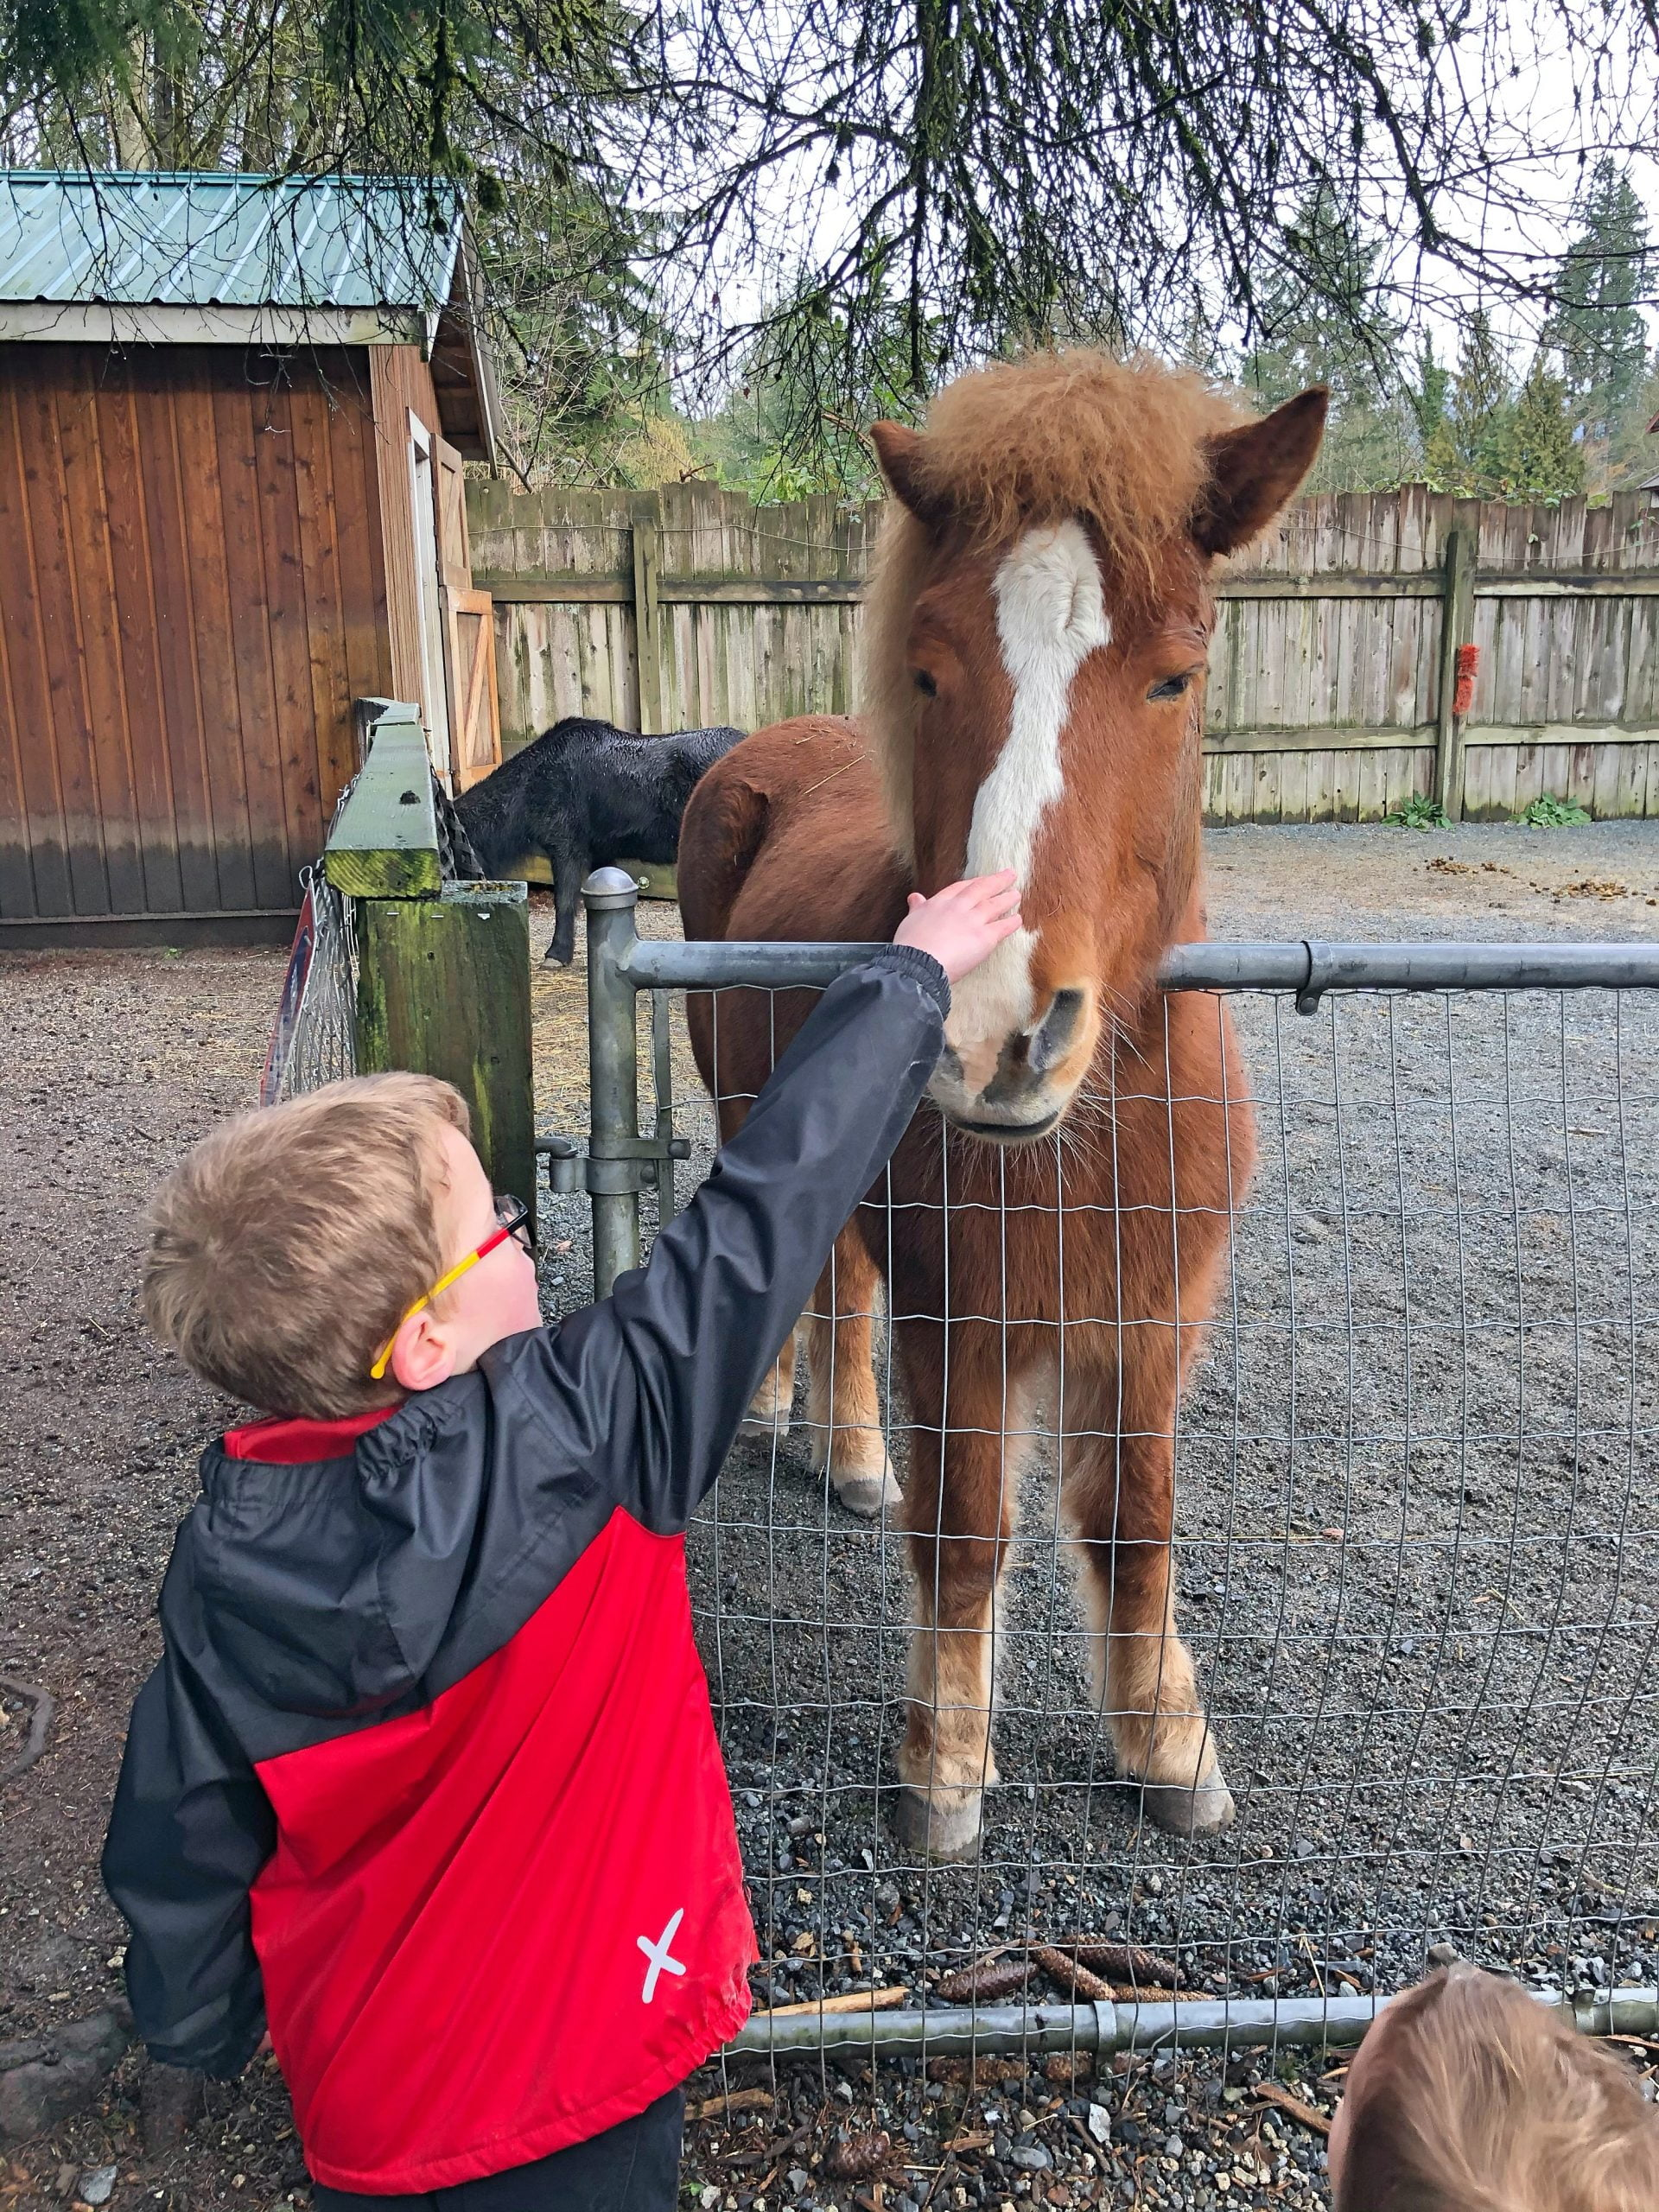 Petting the Horse at Maplewood Farm